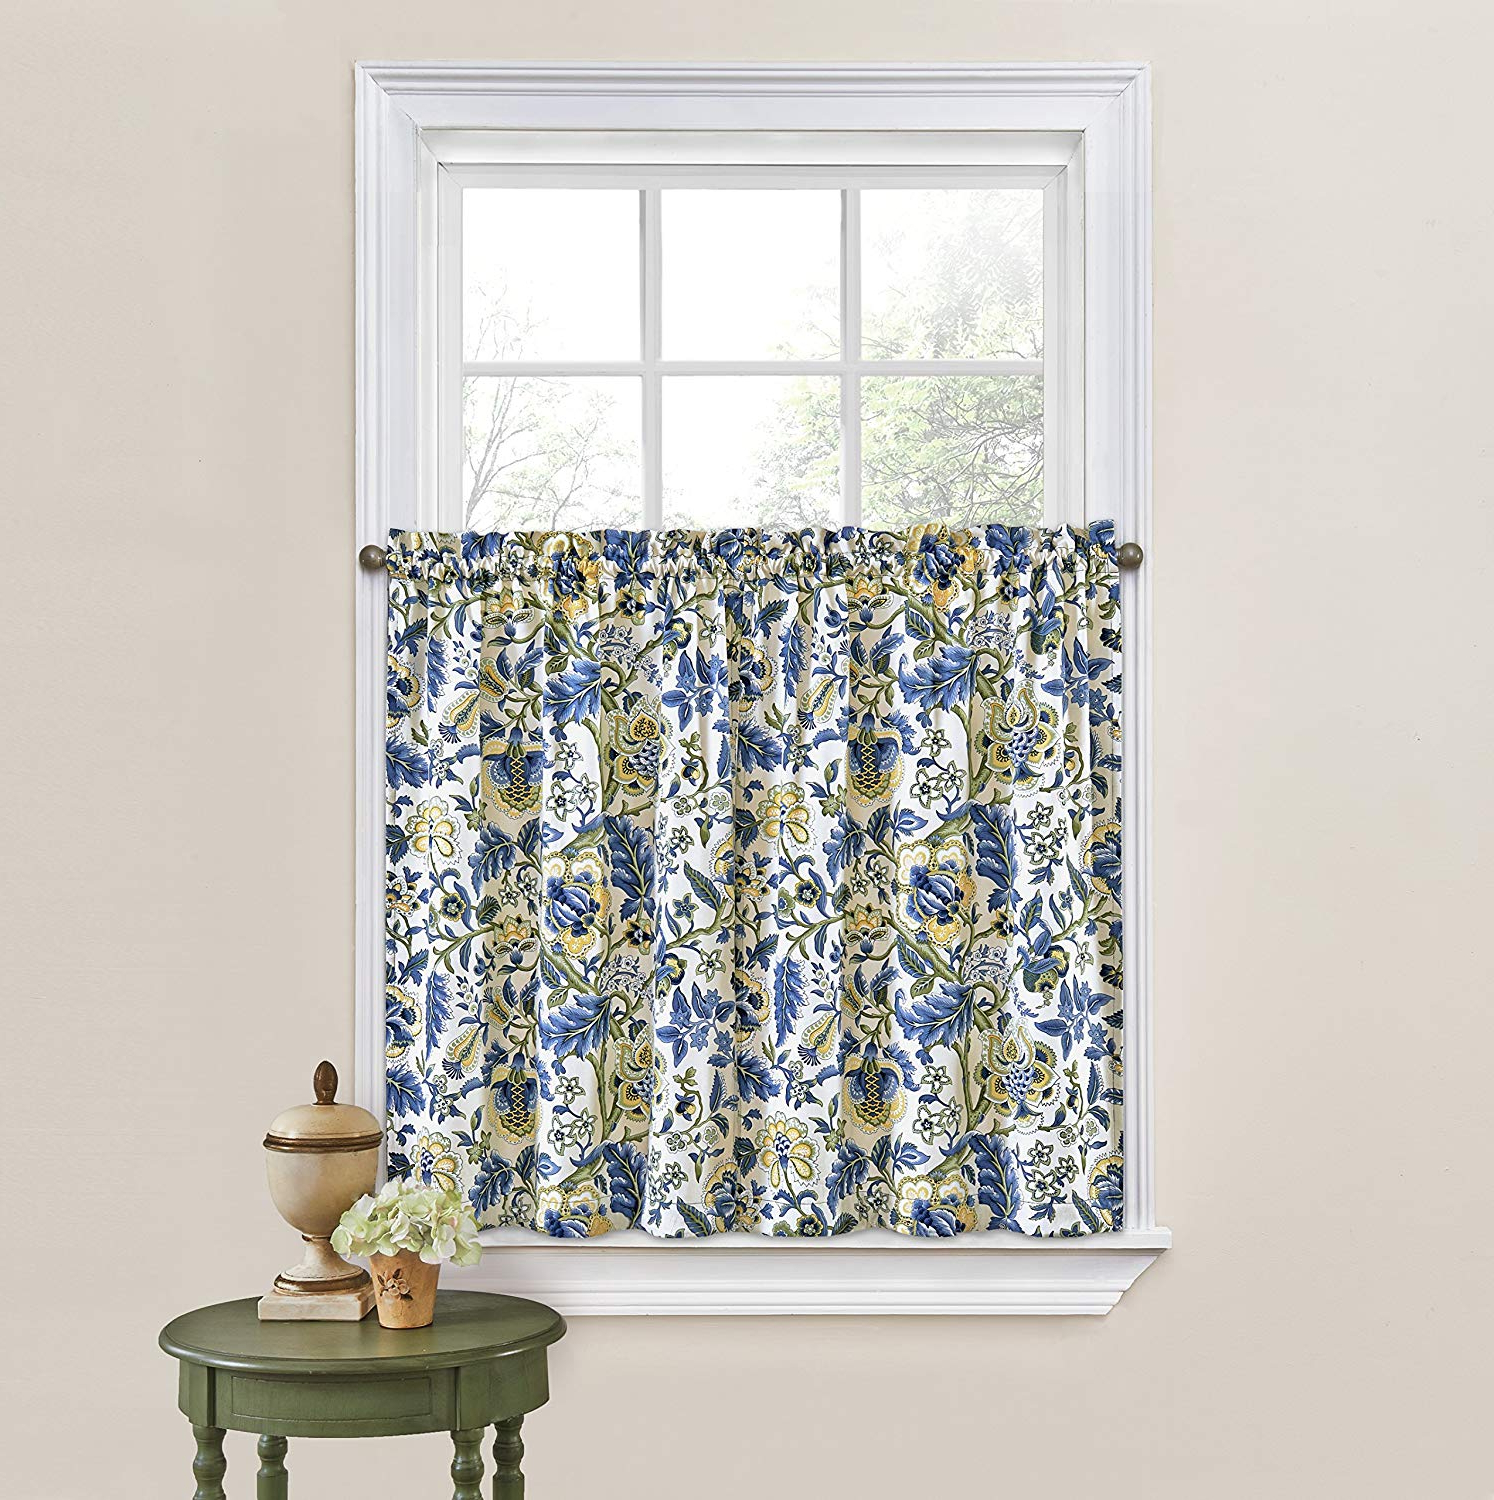 "Waverly Felicite Curtain Tiers For Preferred Waverly Kitchen Curtains For Windows – Imperial Dress 52"" X 36"" Small Window Panel Tiers Privacy Window Treatment Pair Bathroom, Living Room, (View 15 of 20)"